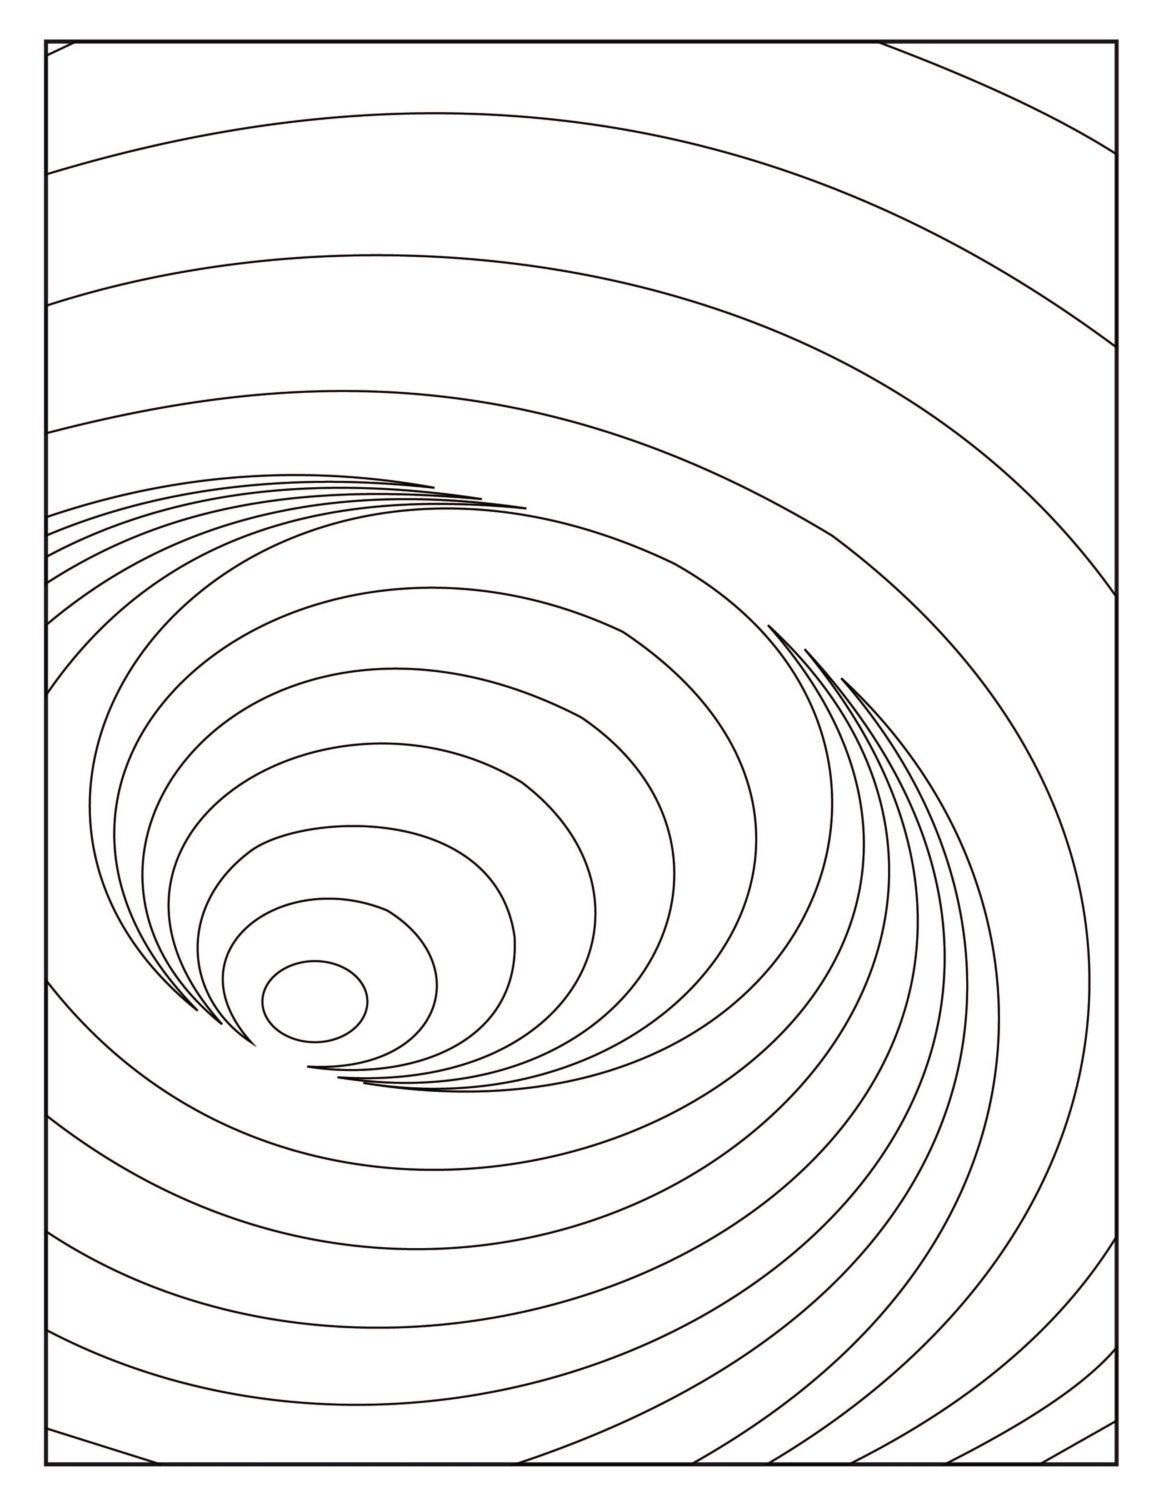 Free Spiral Design Adult Coloring Page Free Adult Coloring Pages